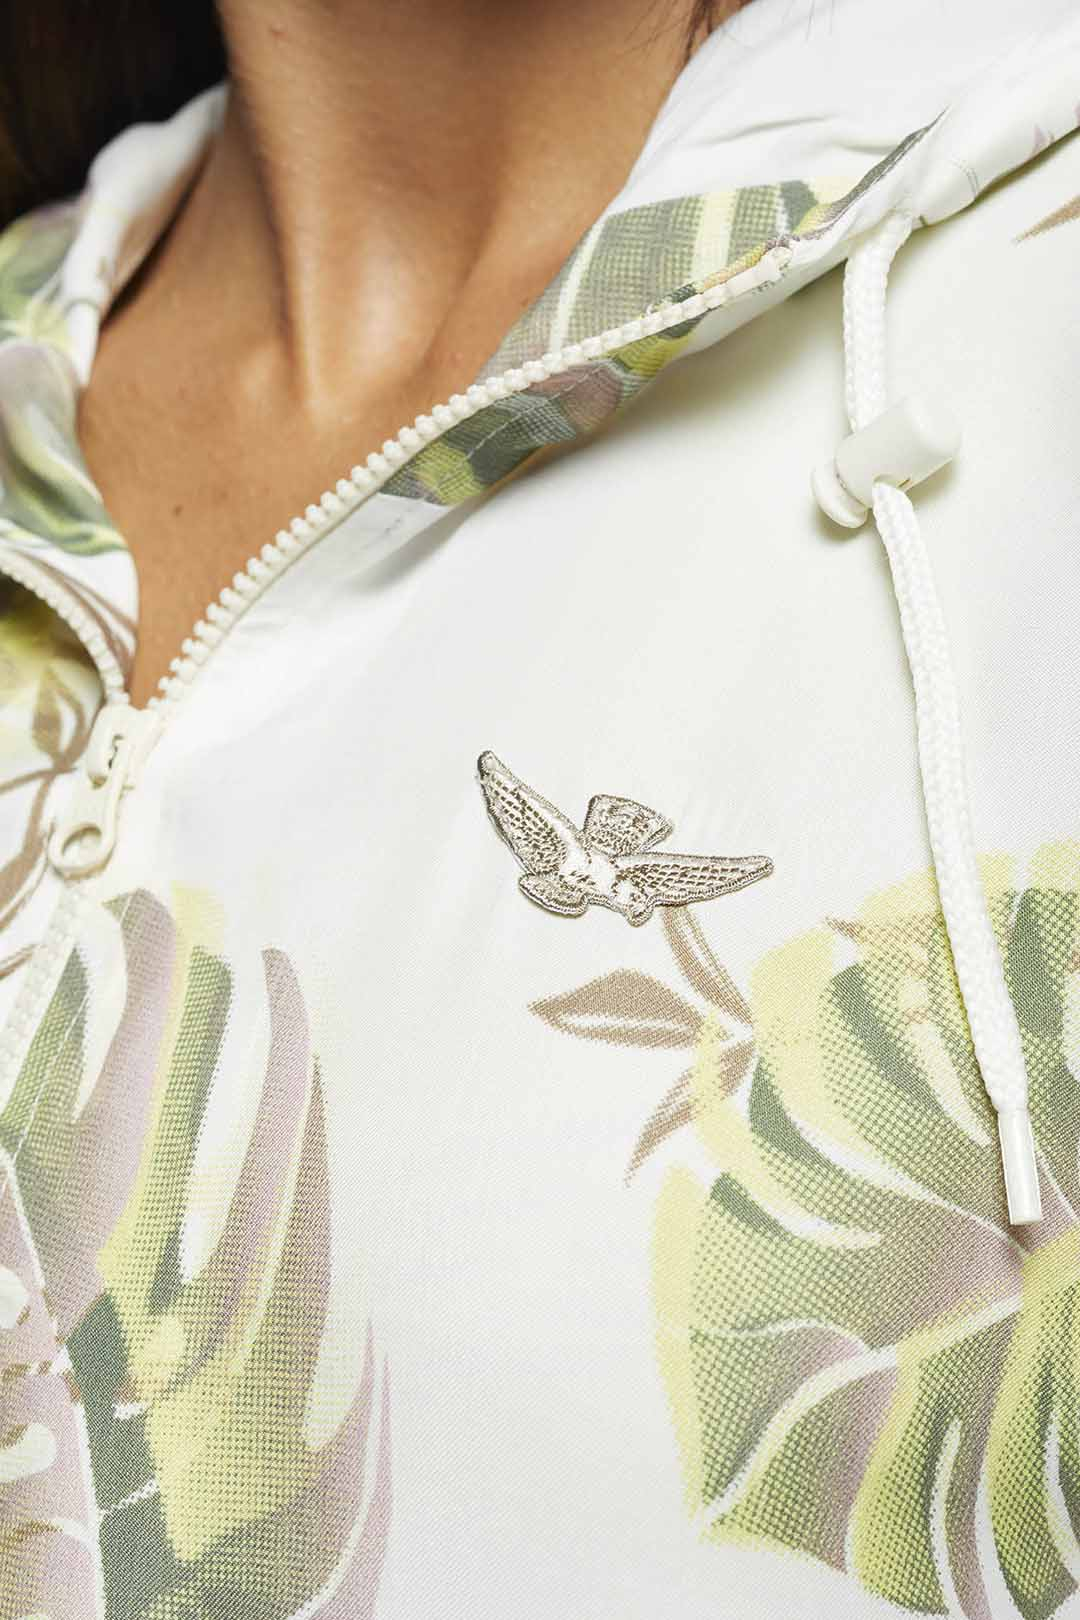 Tropical pattern Jacket                                5